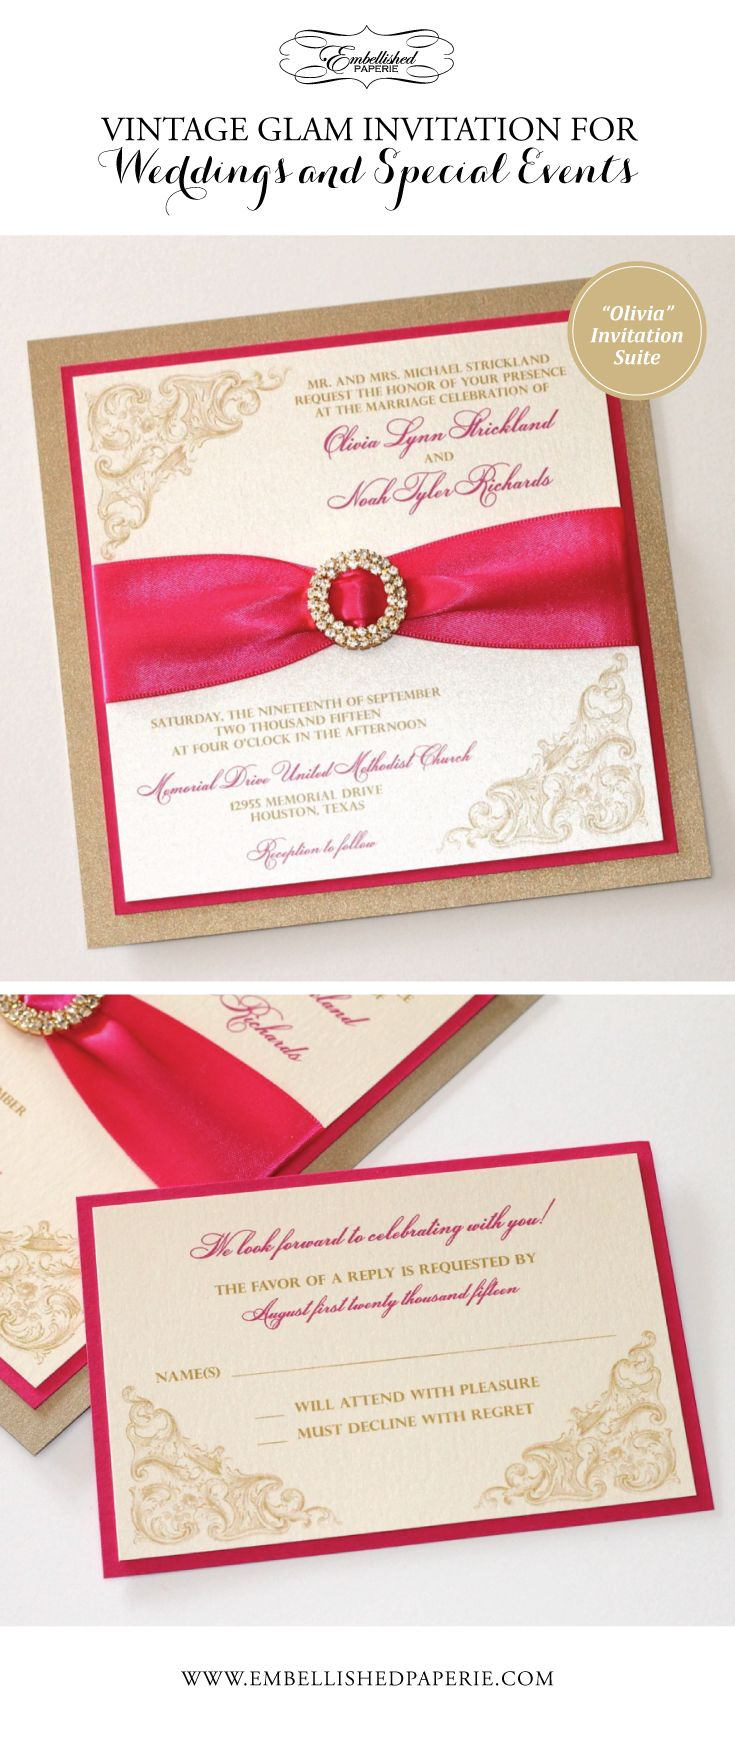 37 best lace wedding invitations images on Pinterest | Laser cut ...